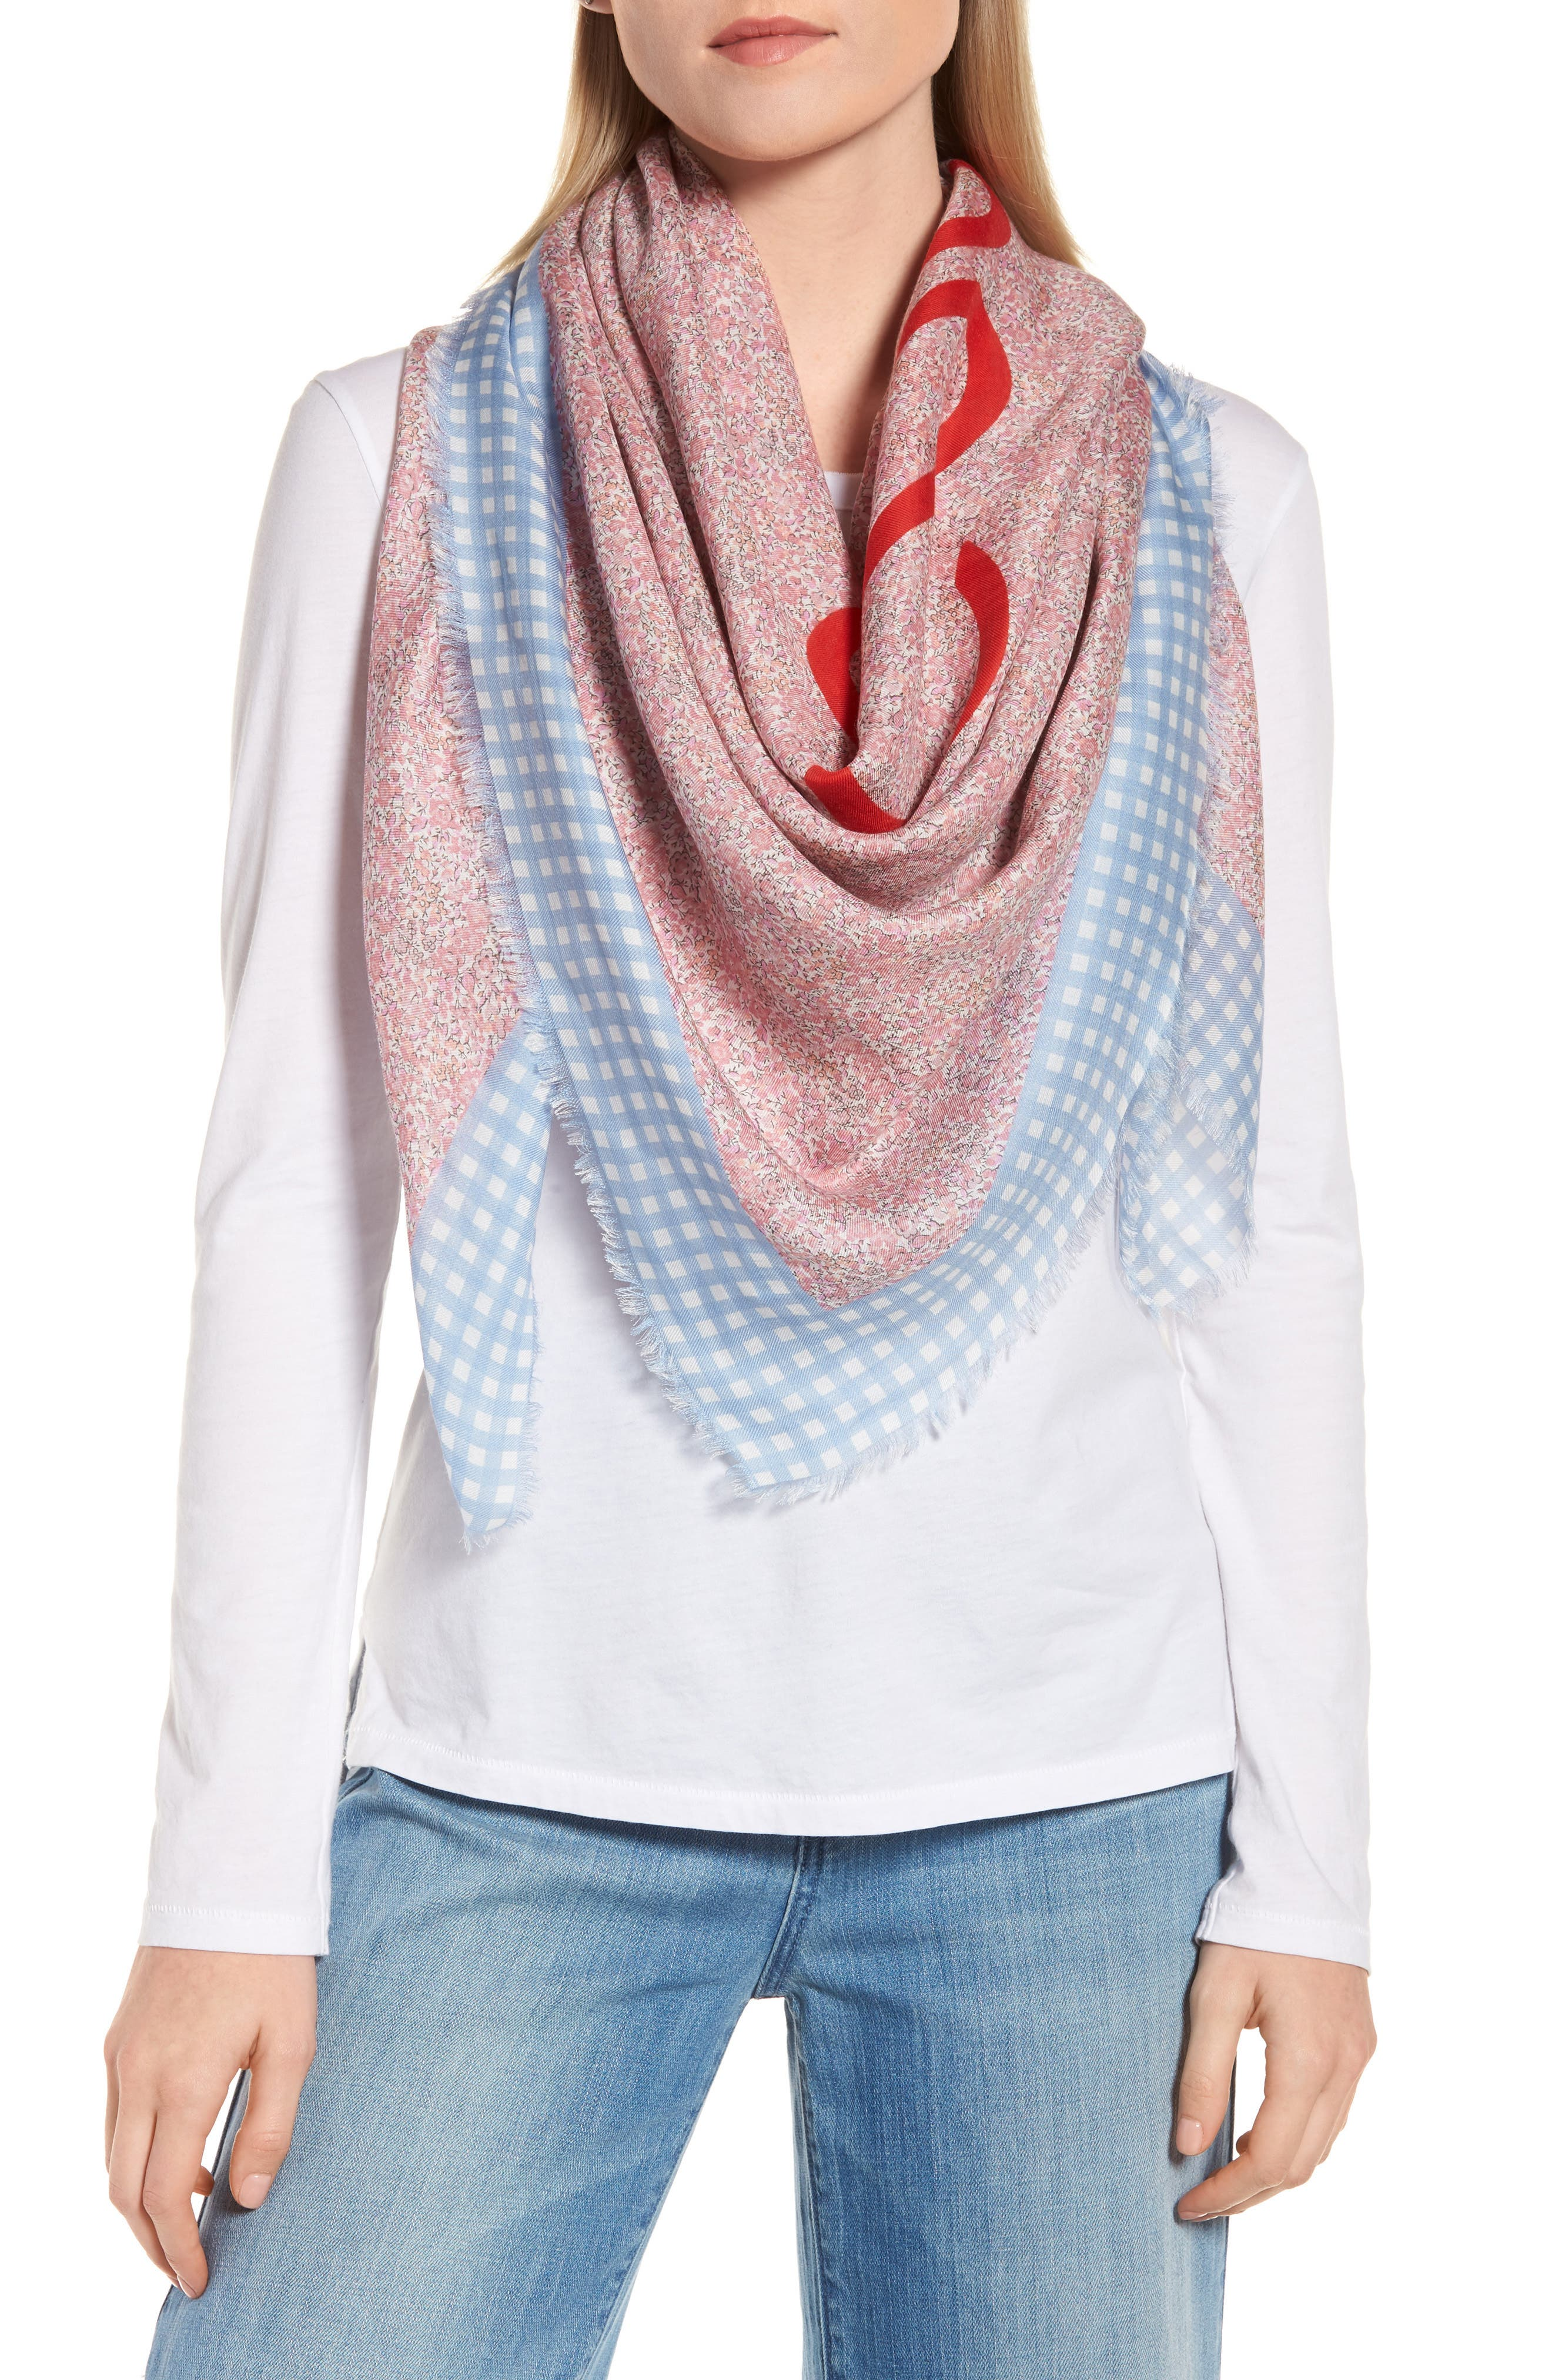 Liberty Gingham Scarf,                         Main,                         color, PINK/ BLUE